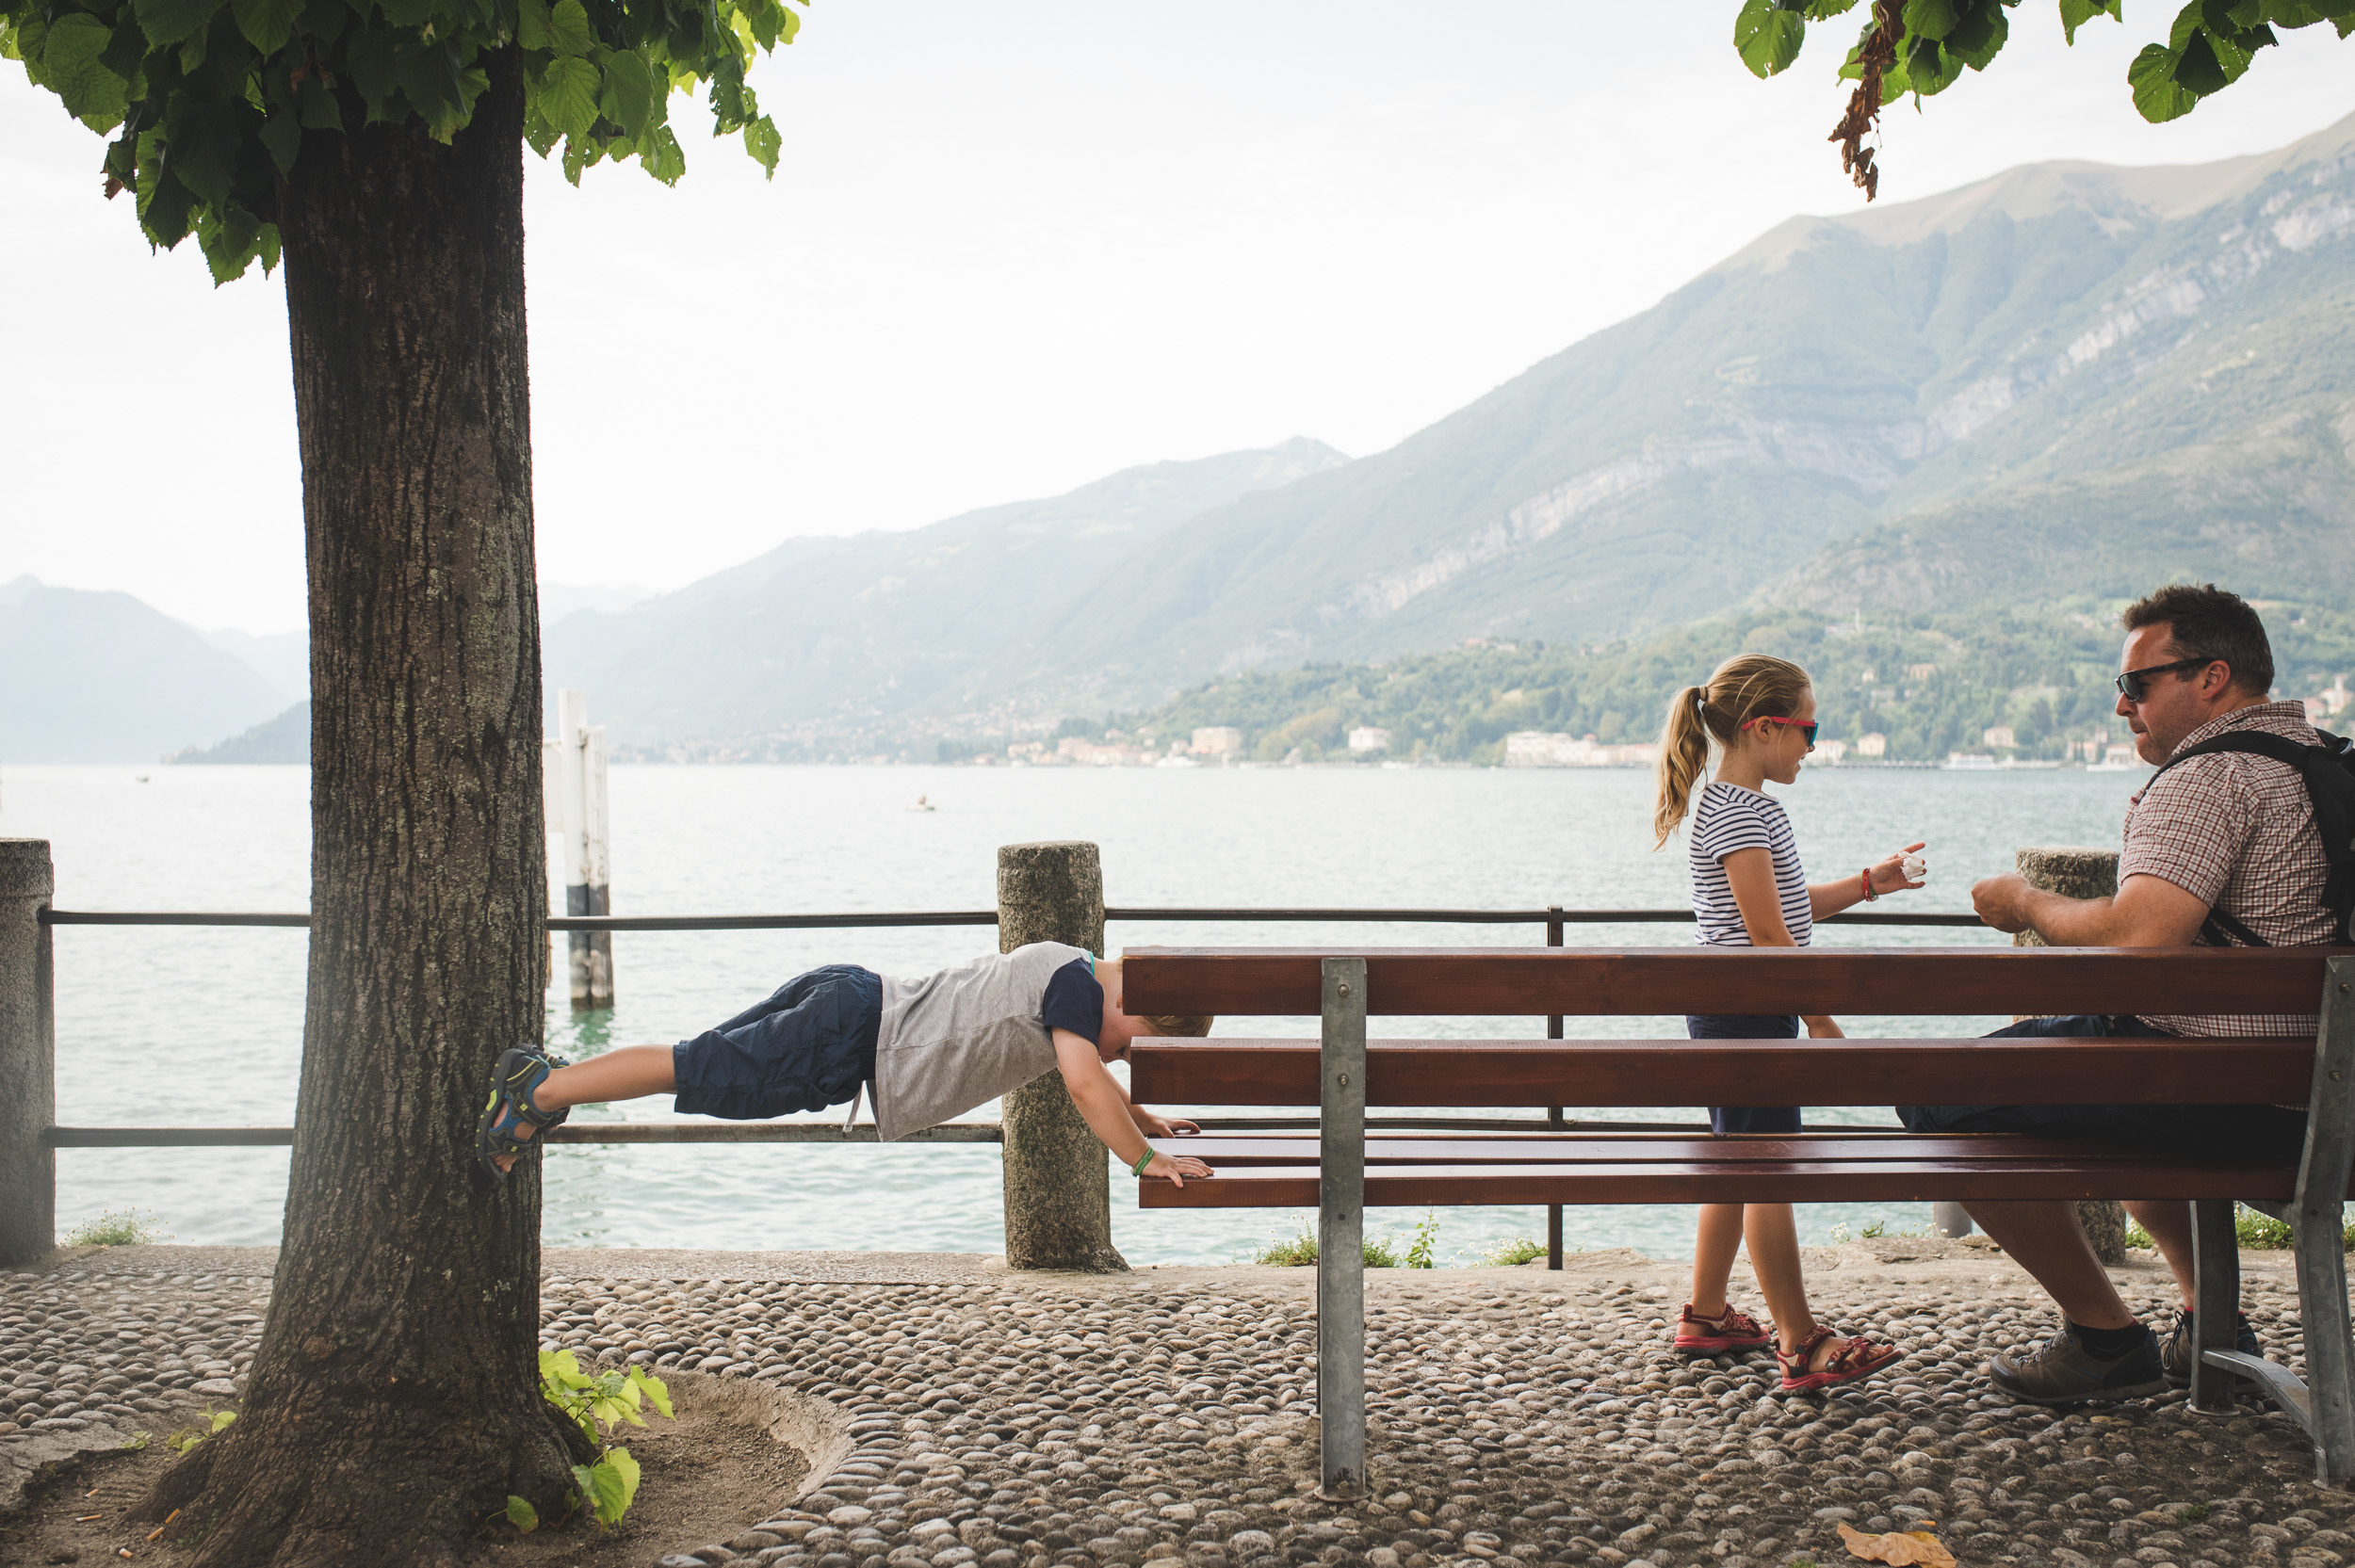 My son doing some impromptu yoga at Lake Como in Italy